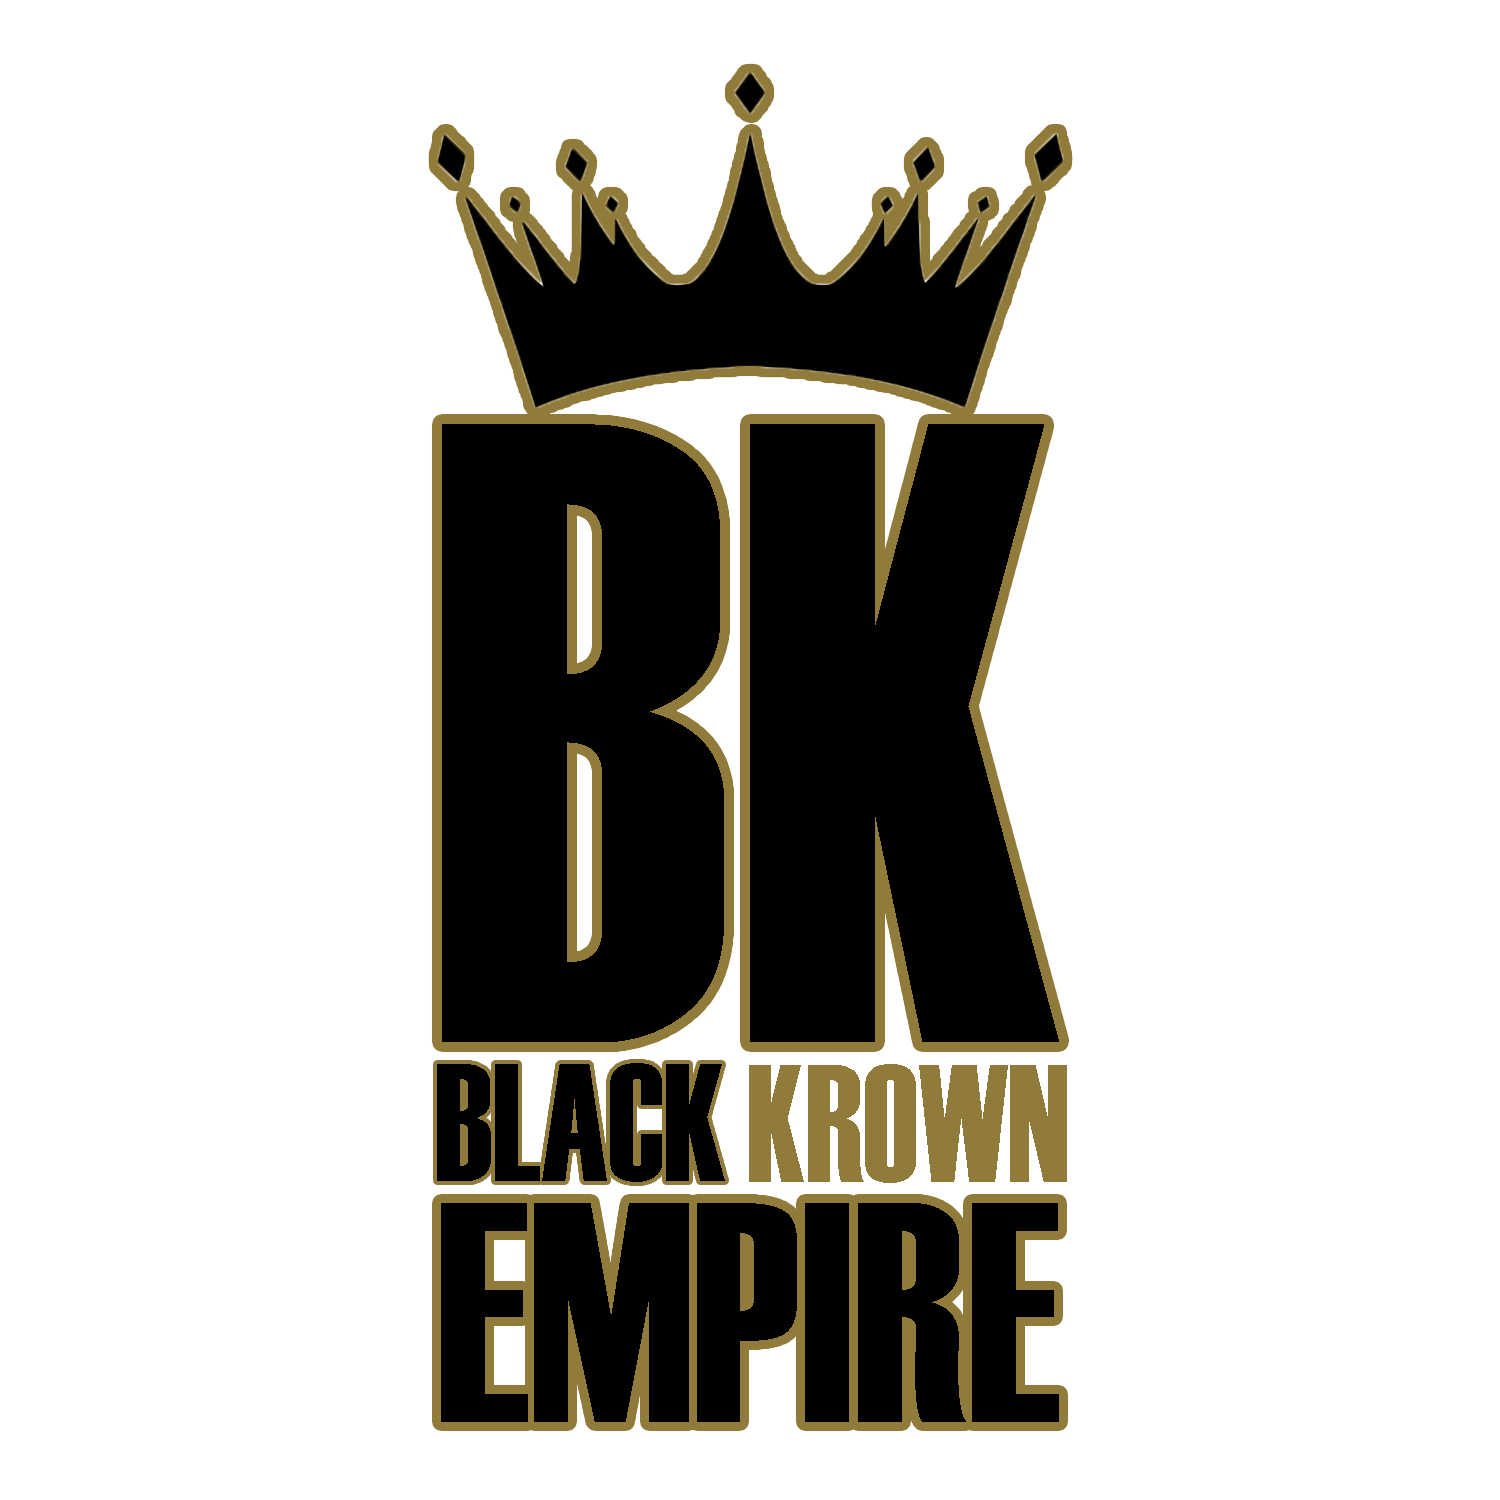 BK BLACK KROWN EMPIRE